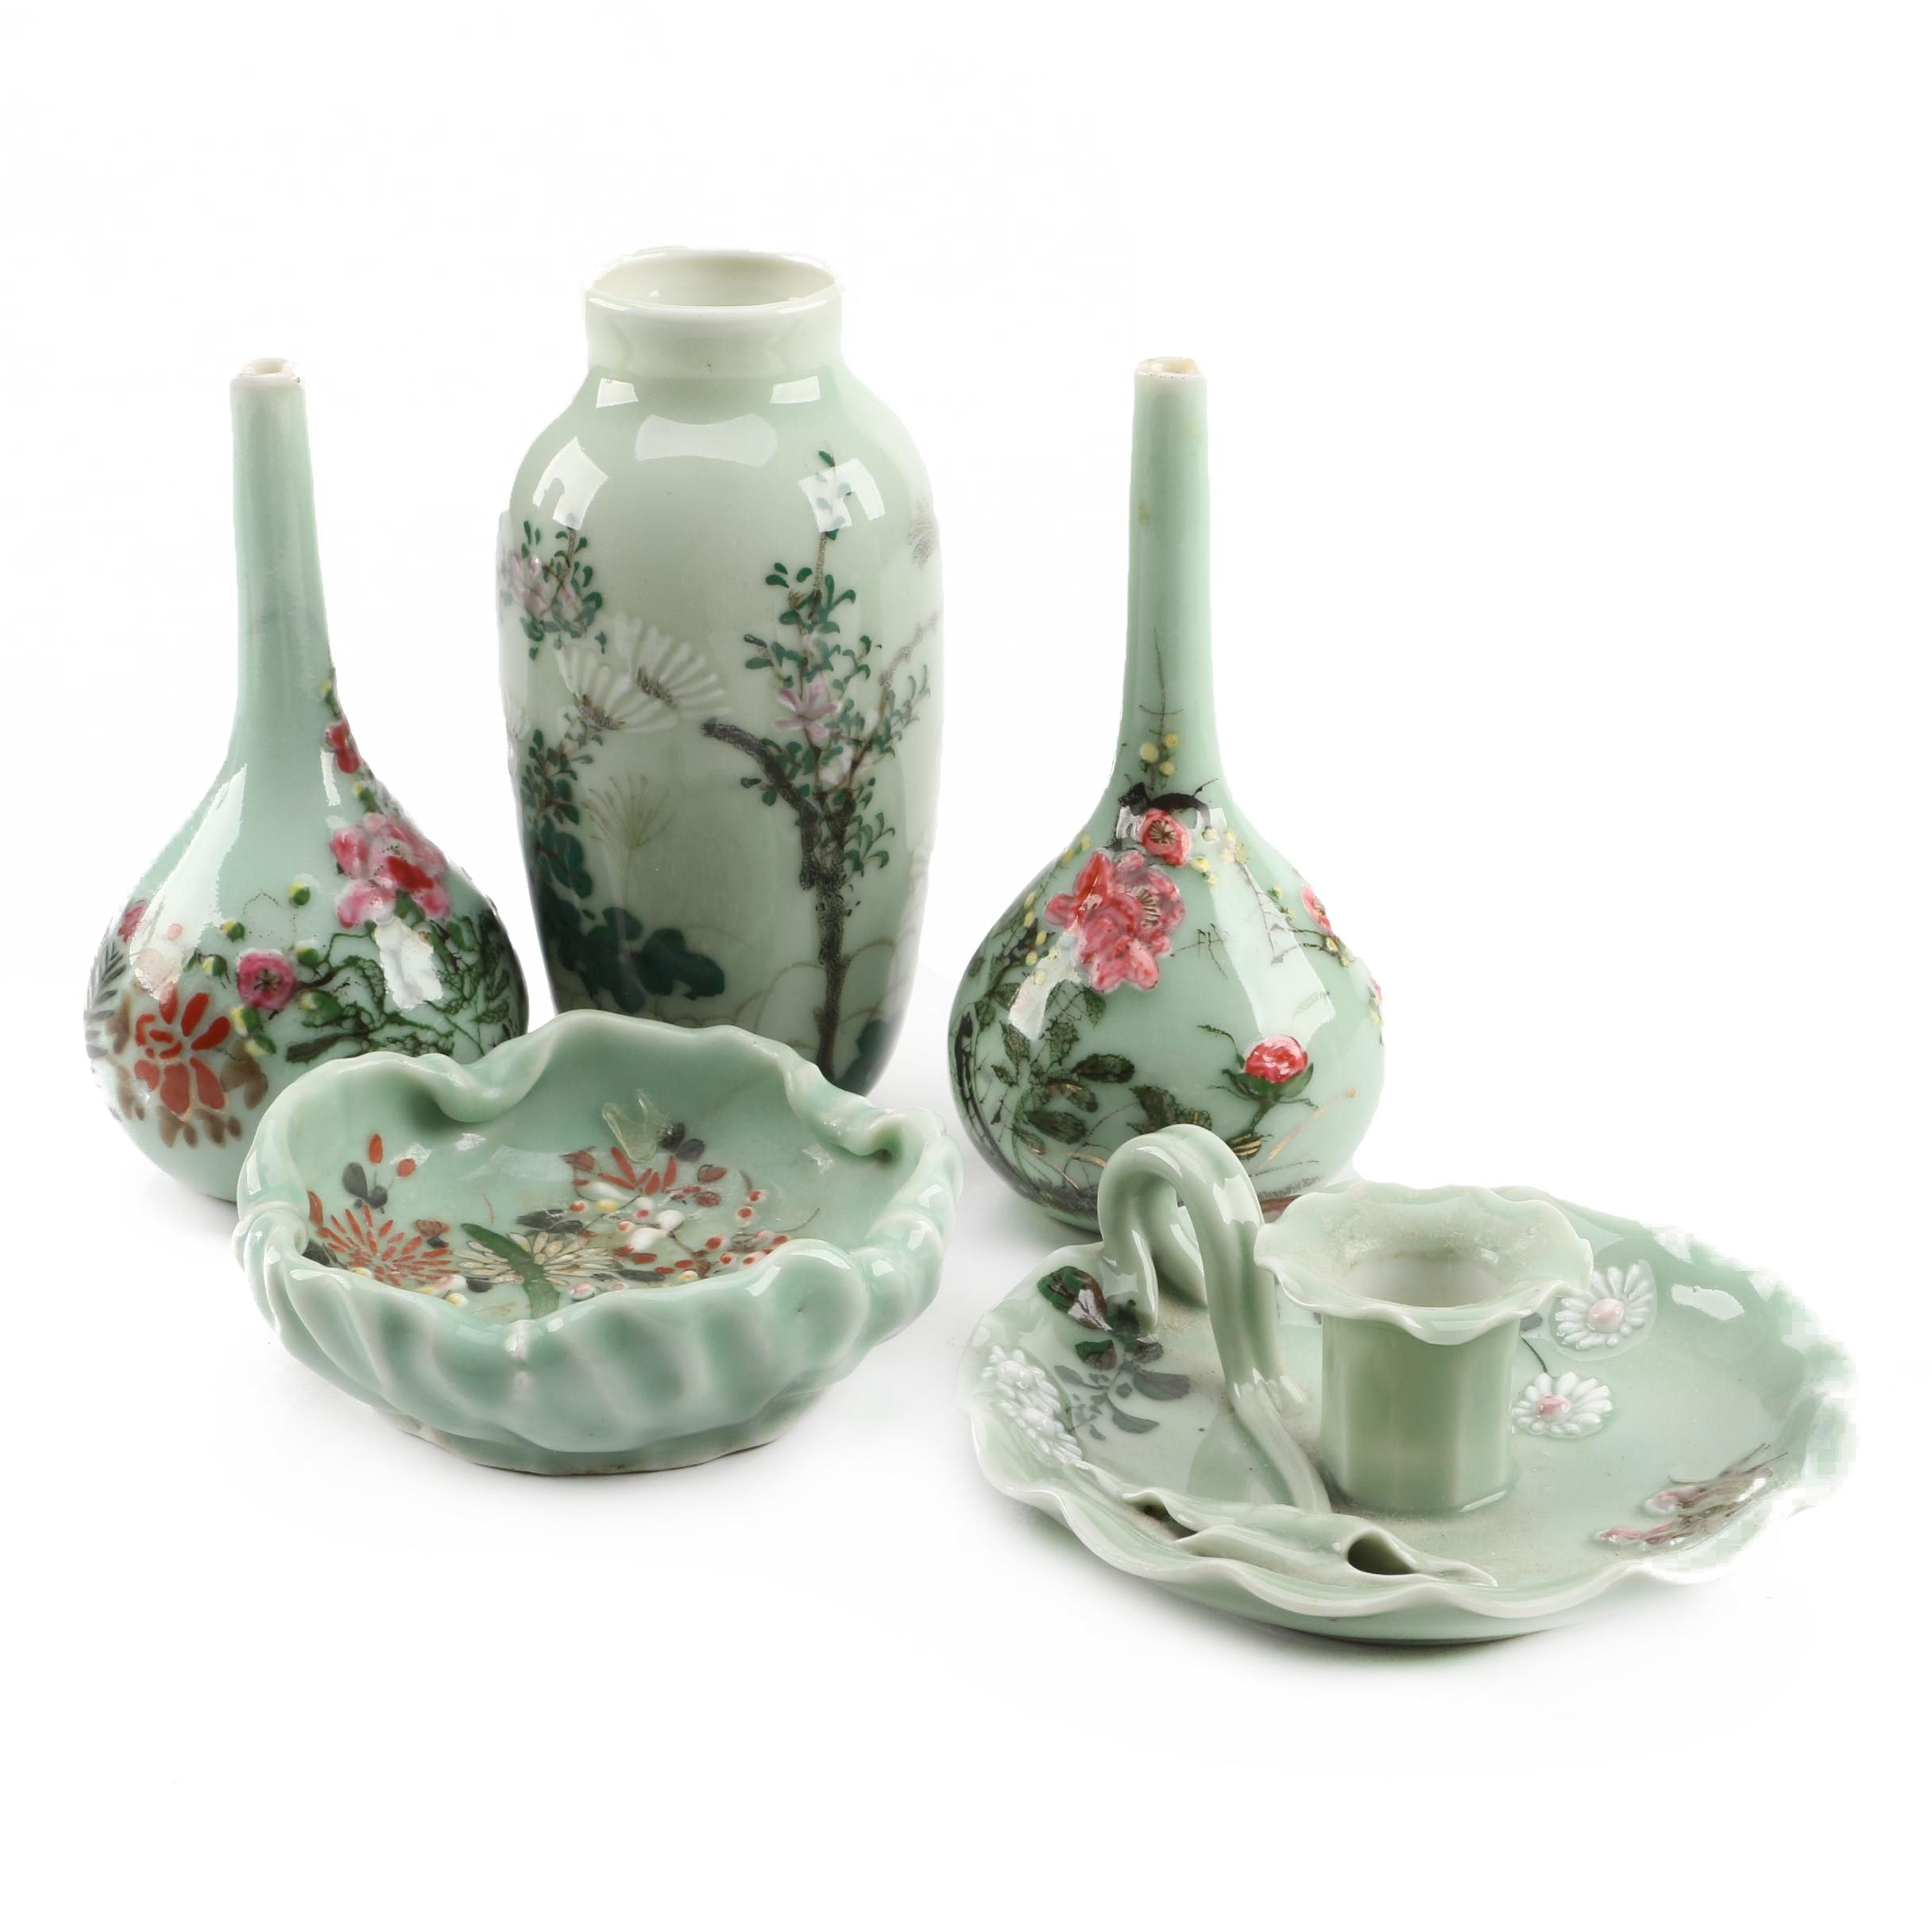 Longquan Style Celadon Hand-Painted Pieces